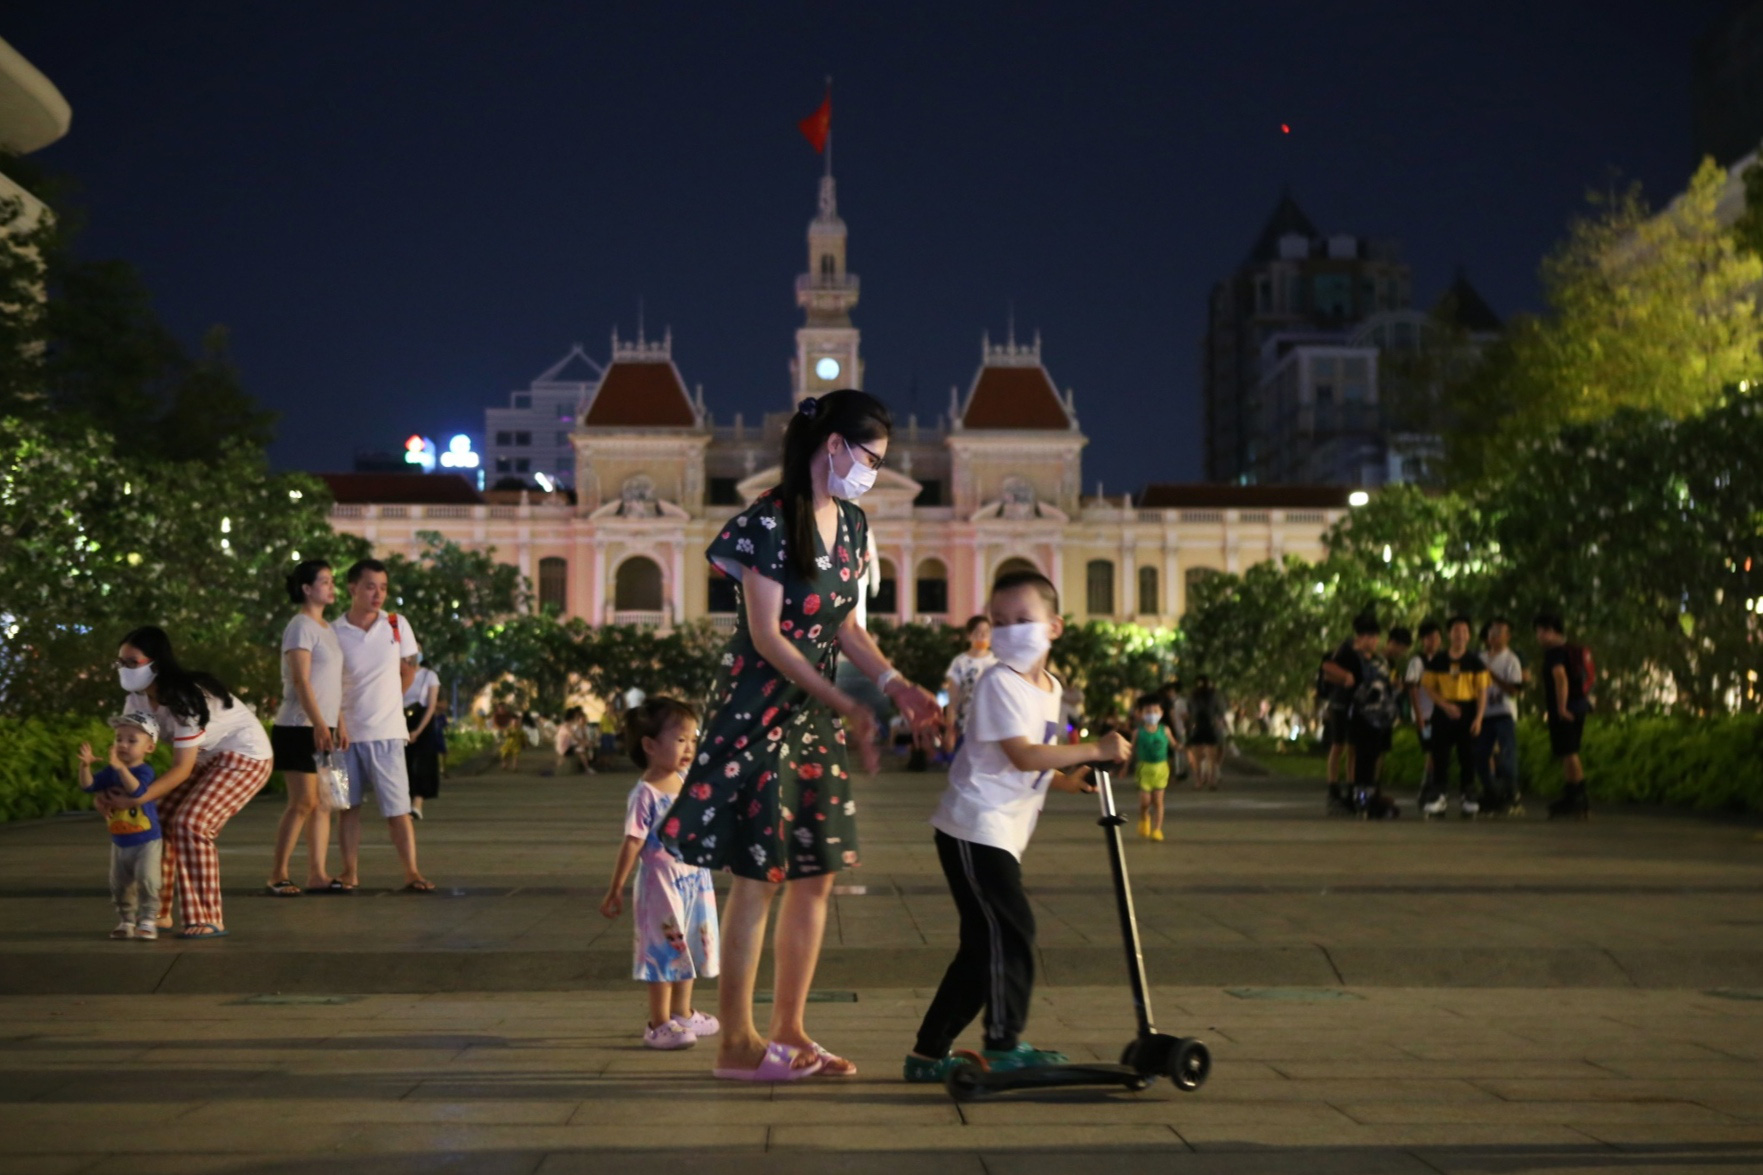 Buildings near Nguyen Hue Walking Street in District 1, Ho Chi Minh City turn off lights to mark the 2021 Earth Hour, March 27, 2021. Photo: Nhat Thinh / Tuoi Tre